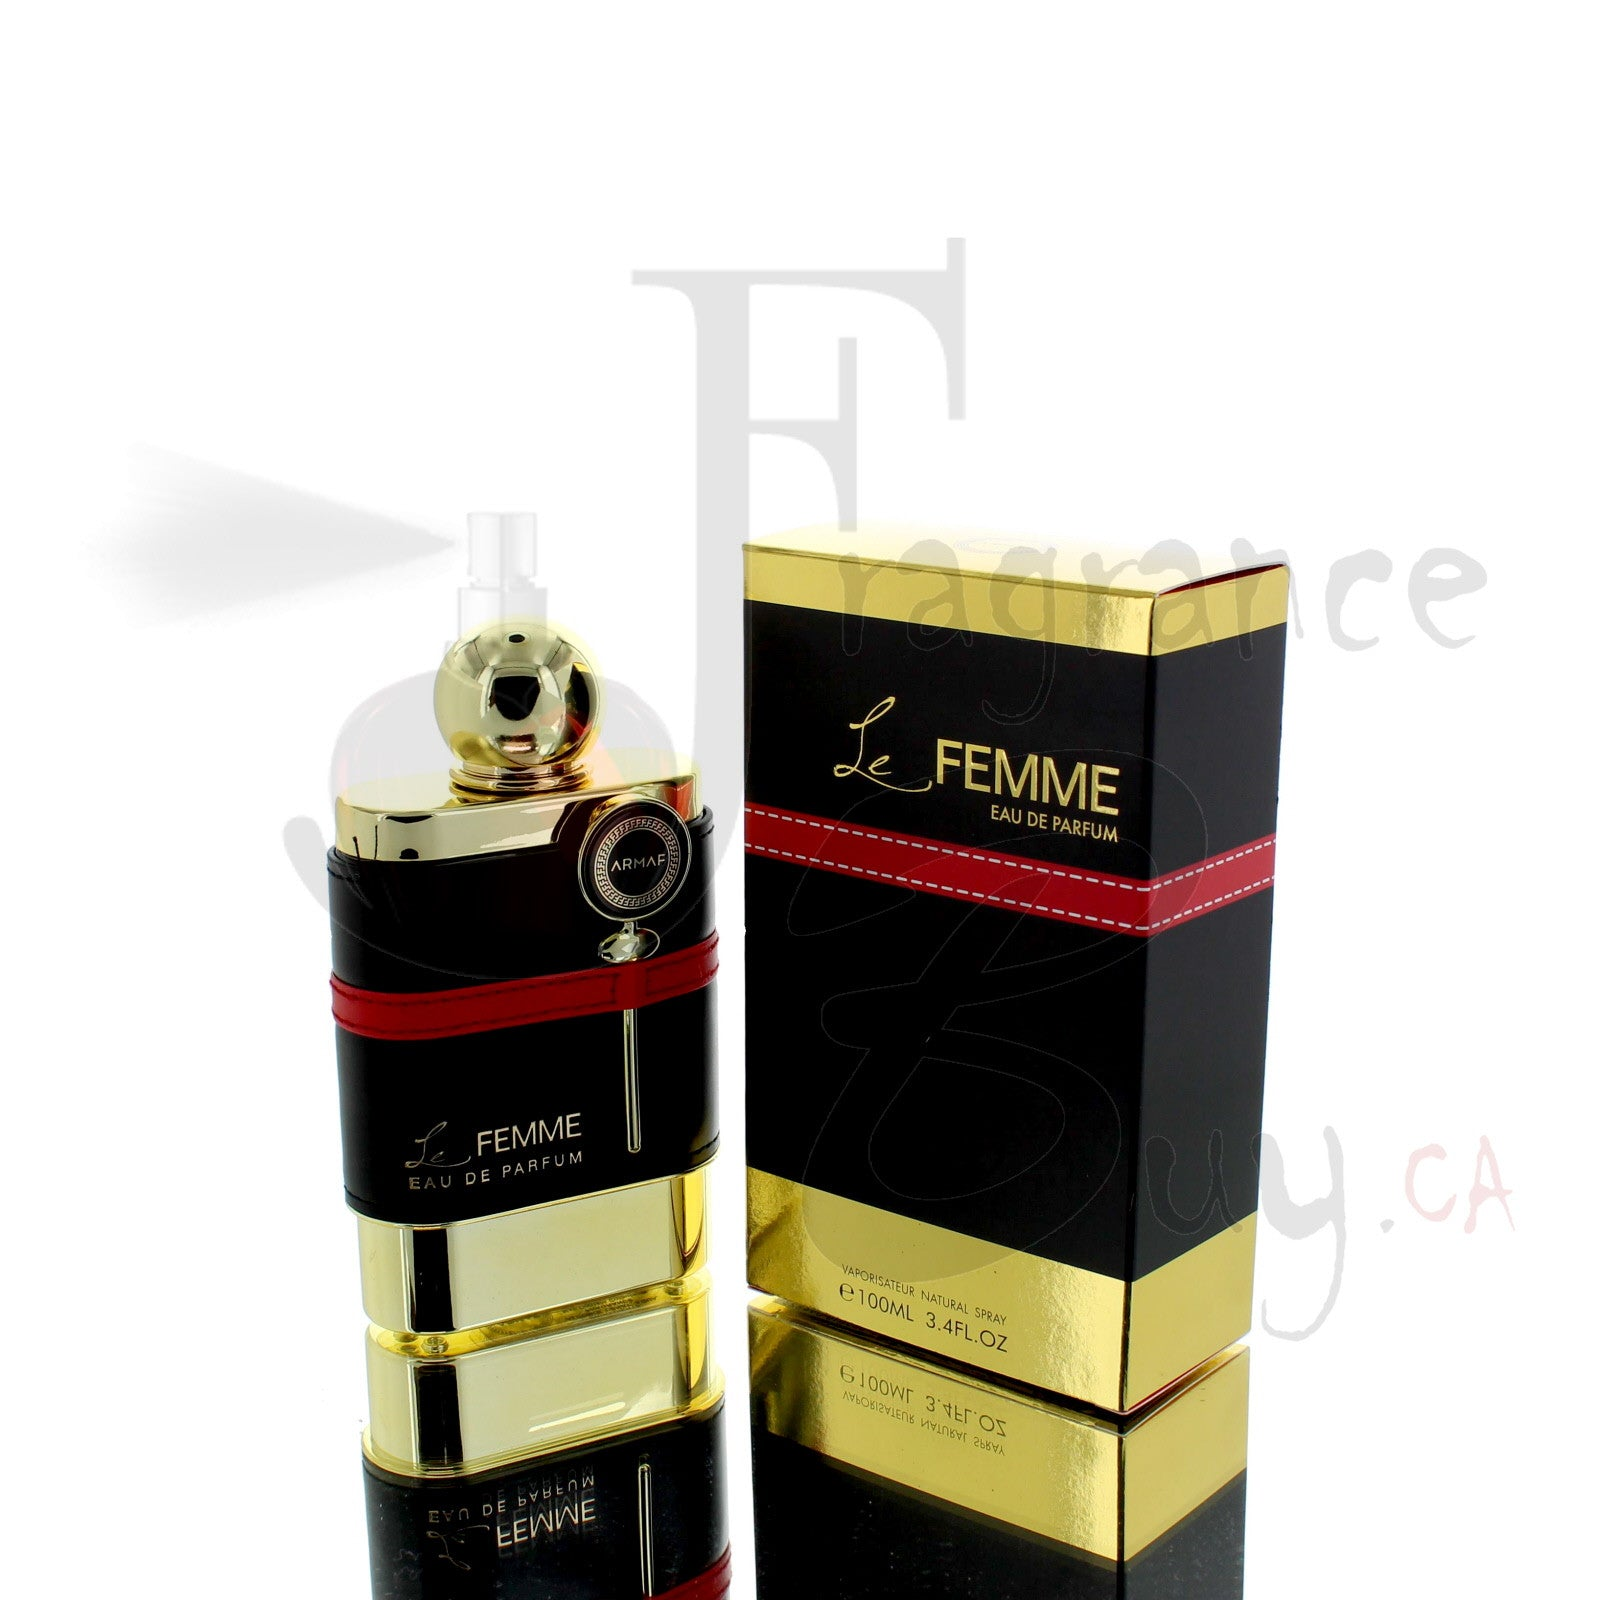 Armaf Le Femme For Woman